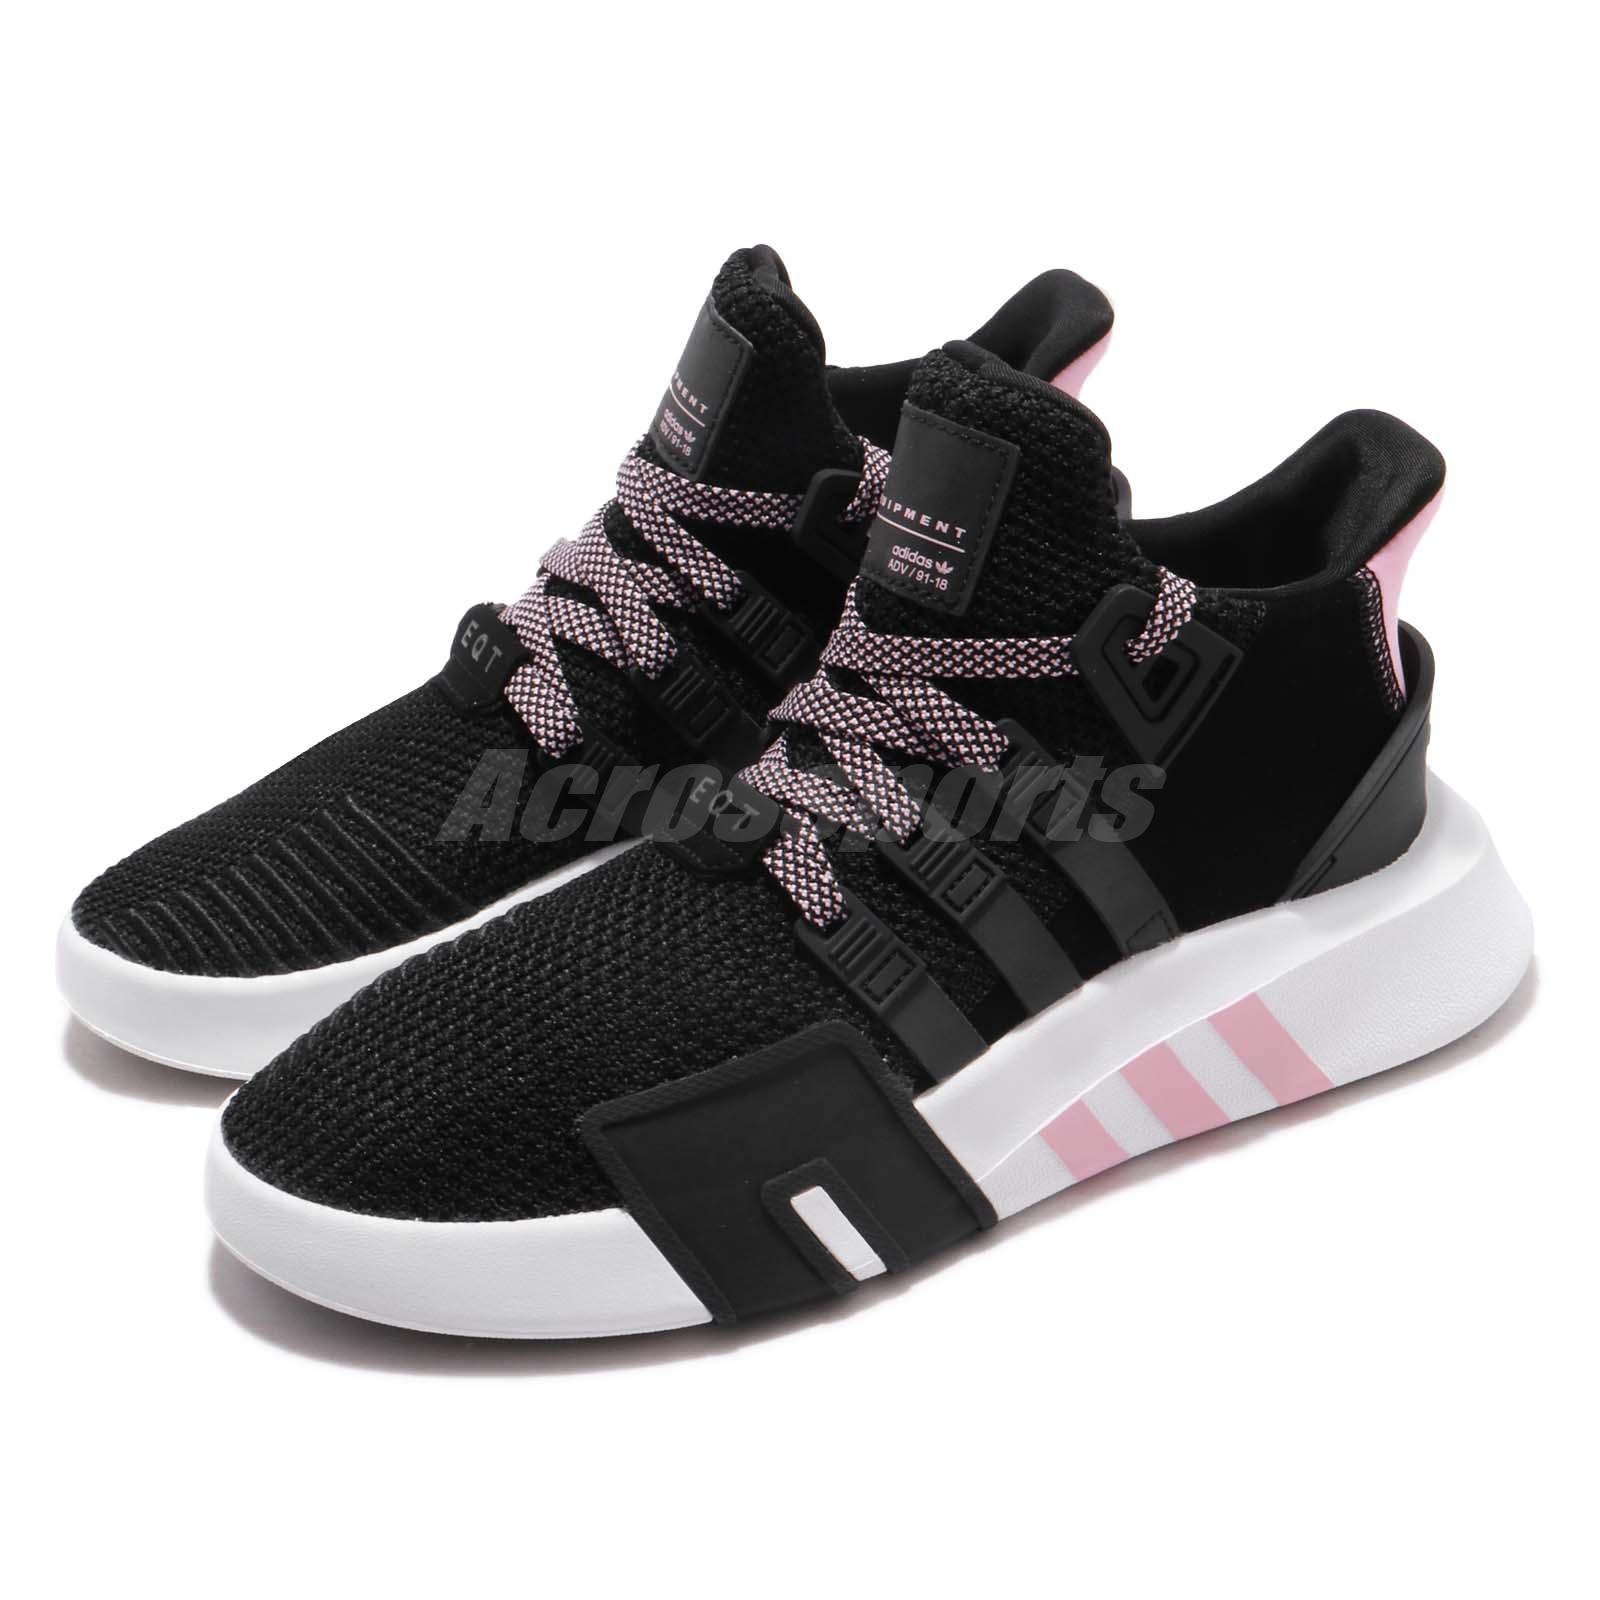 new concept 99966 522f7 Details about adidas Originals EQT Bask ADV W Boost Black Pink White Women  Running Shoe G54480